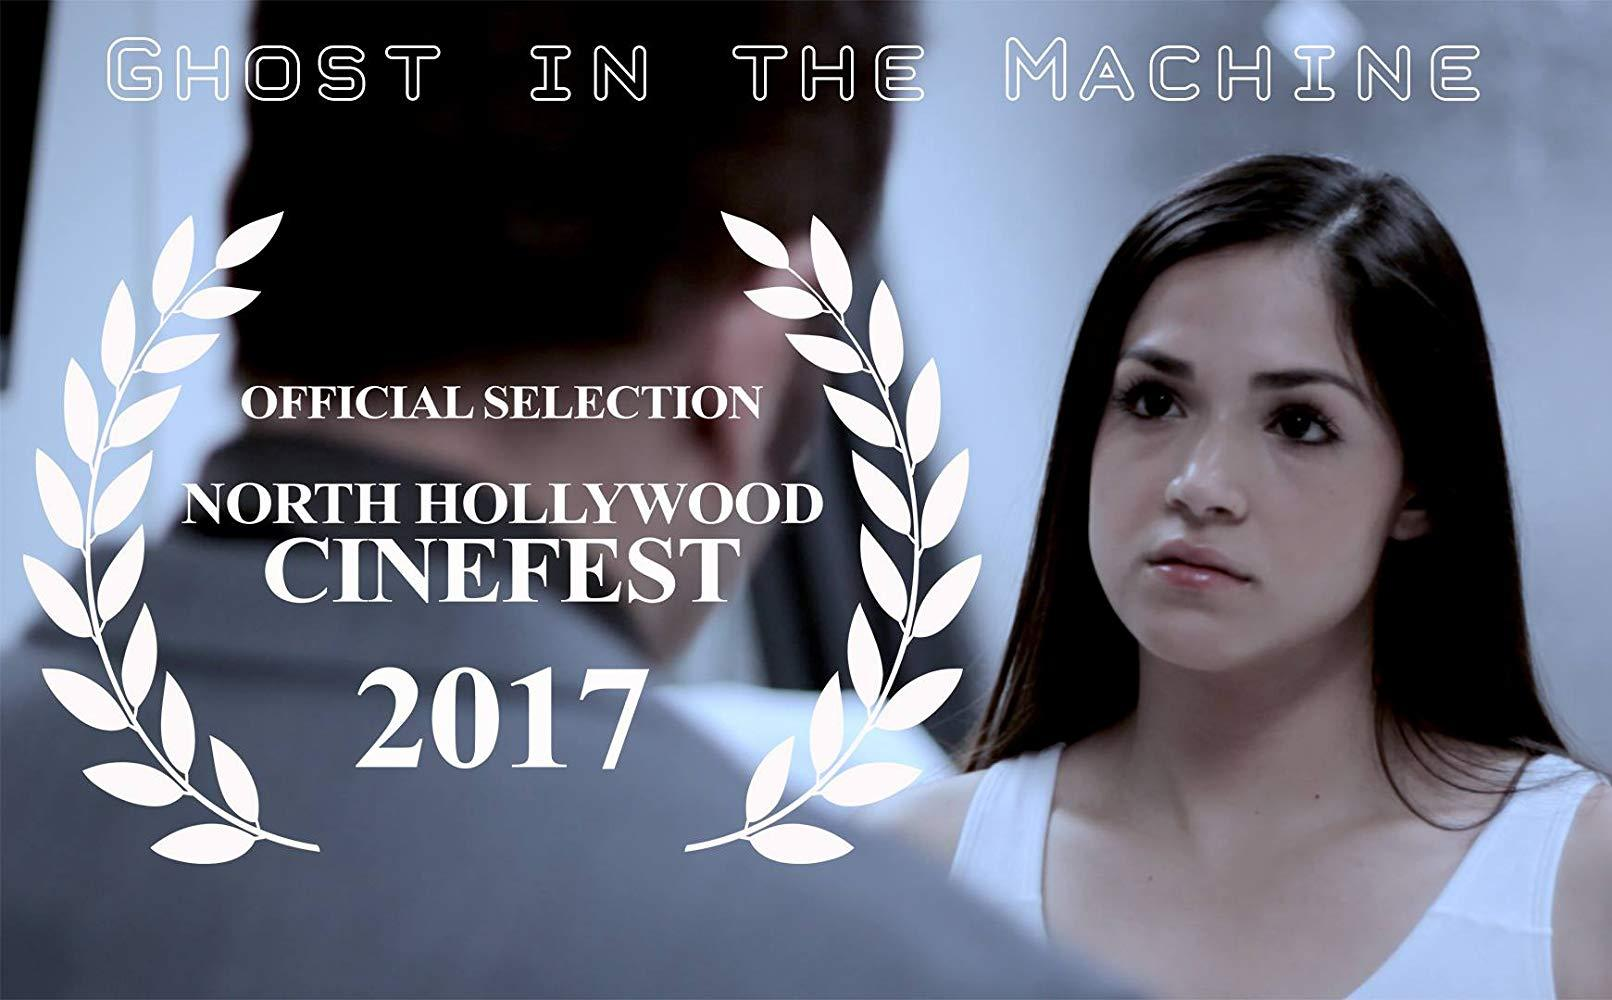 مشاهدة فيلم Ghost in the Machine (2017) مترجم HD اون لاين